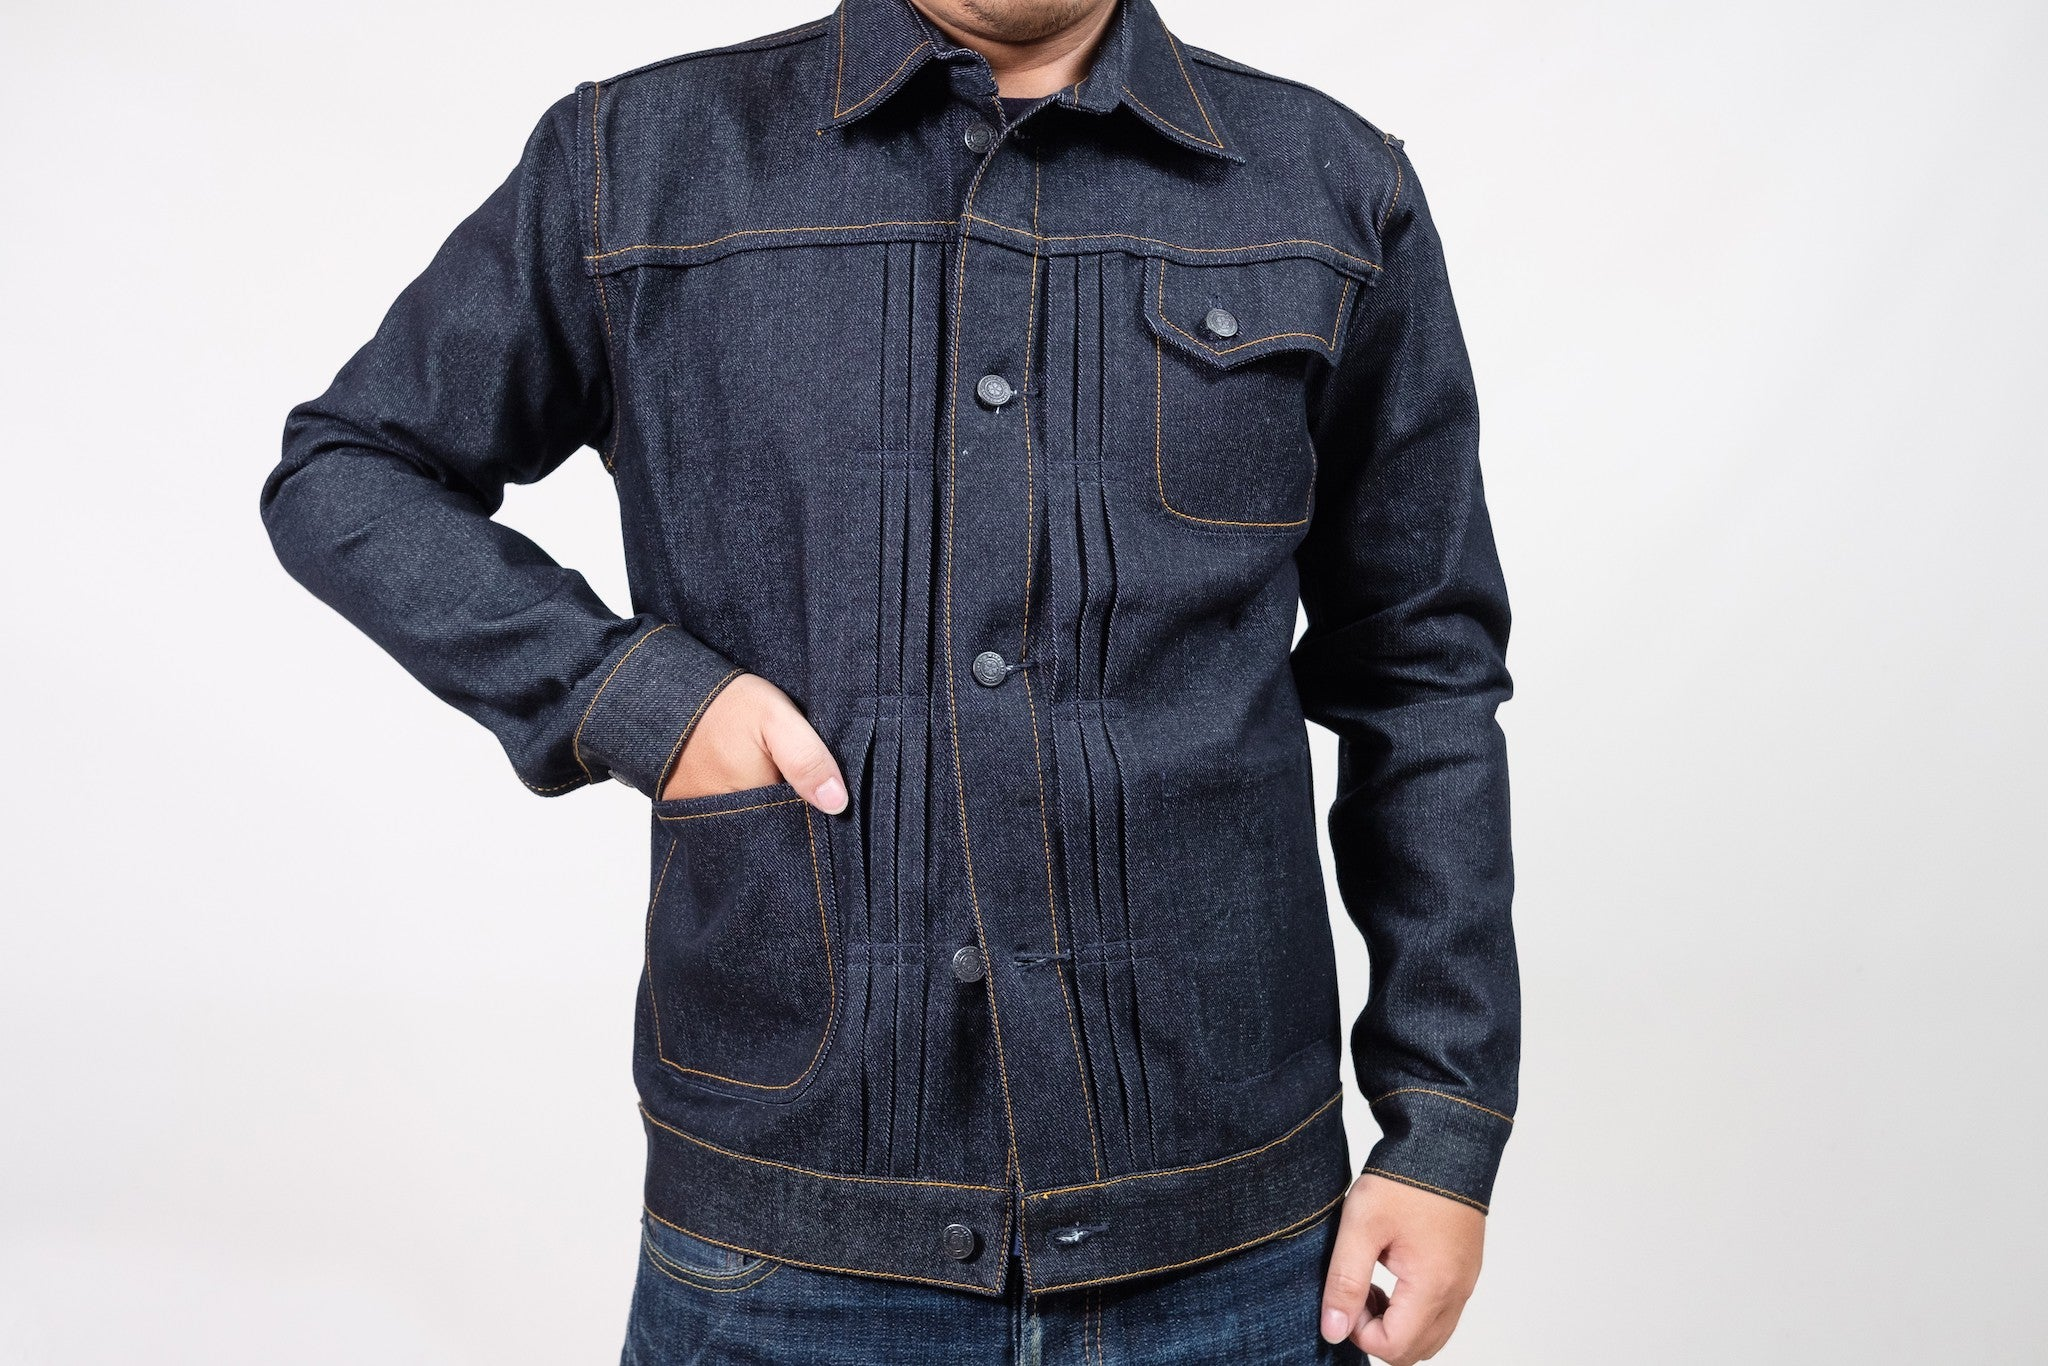 JACKET N°1 - DEEP INDIGO